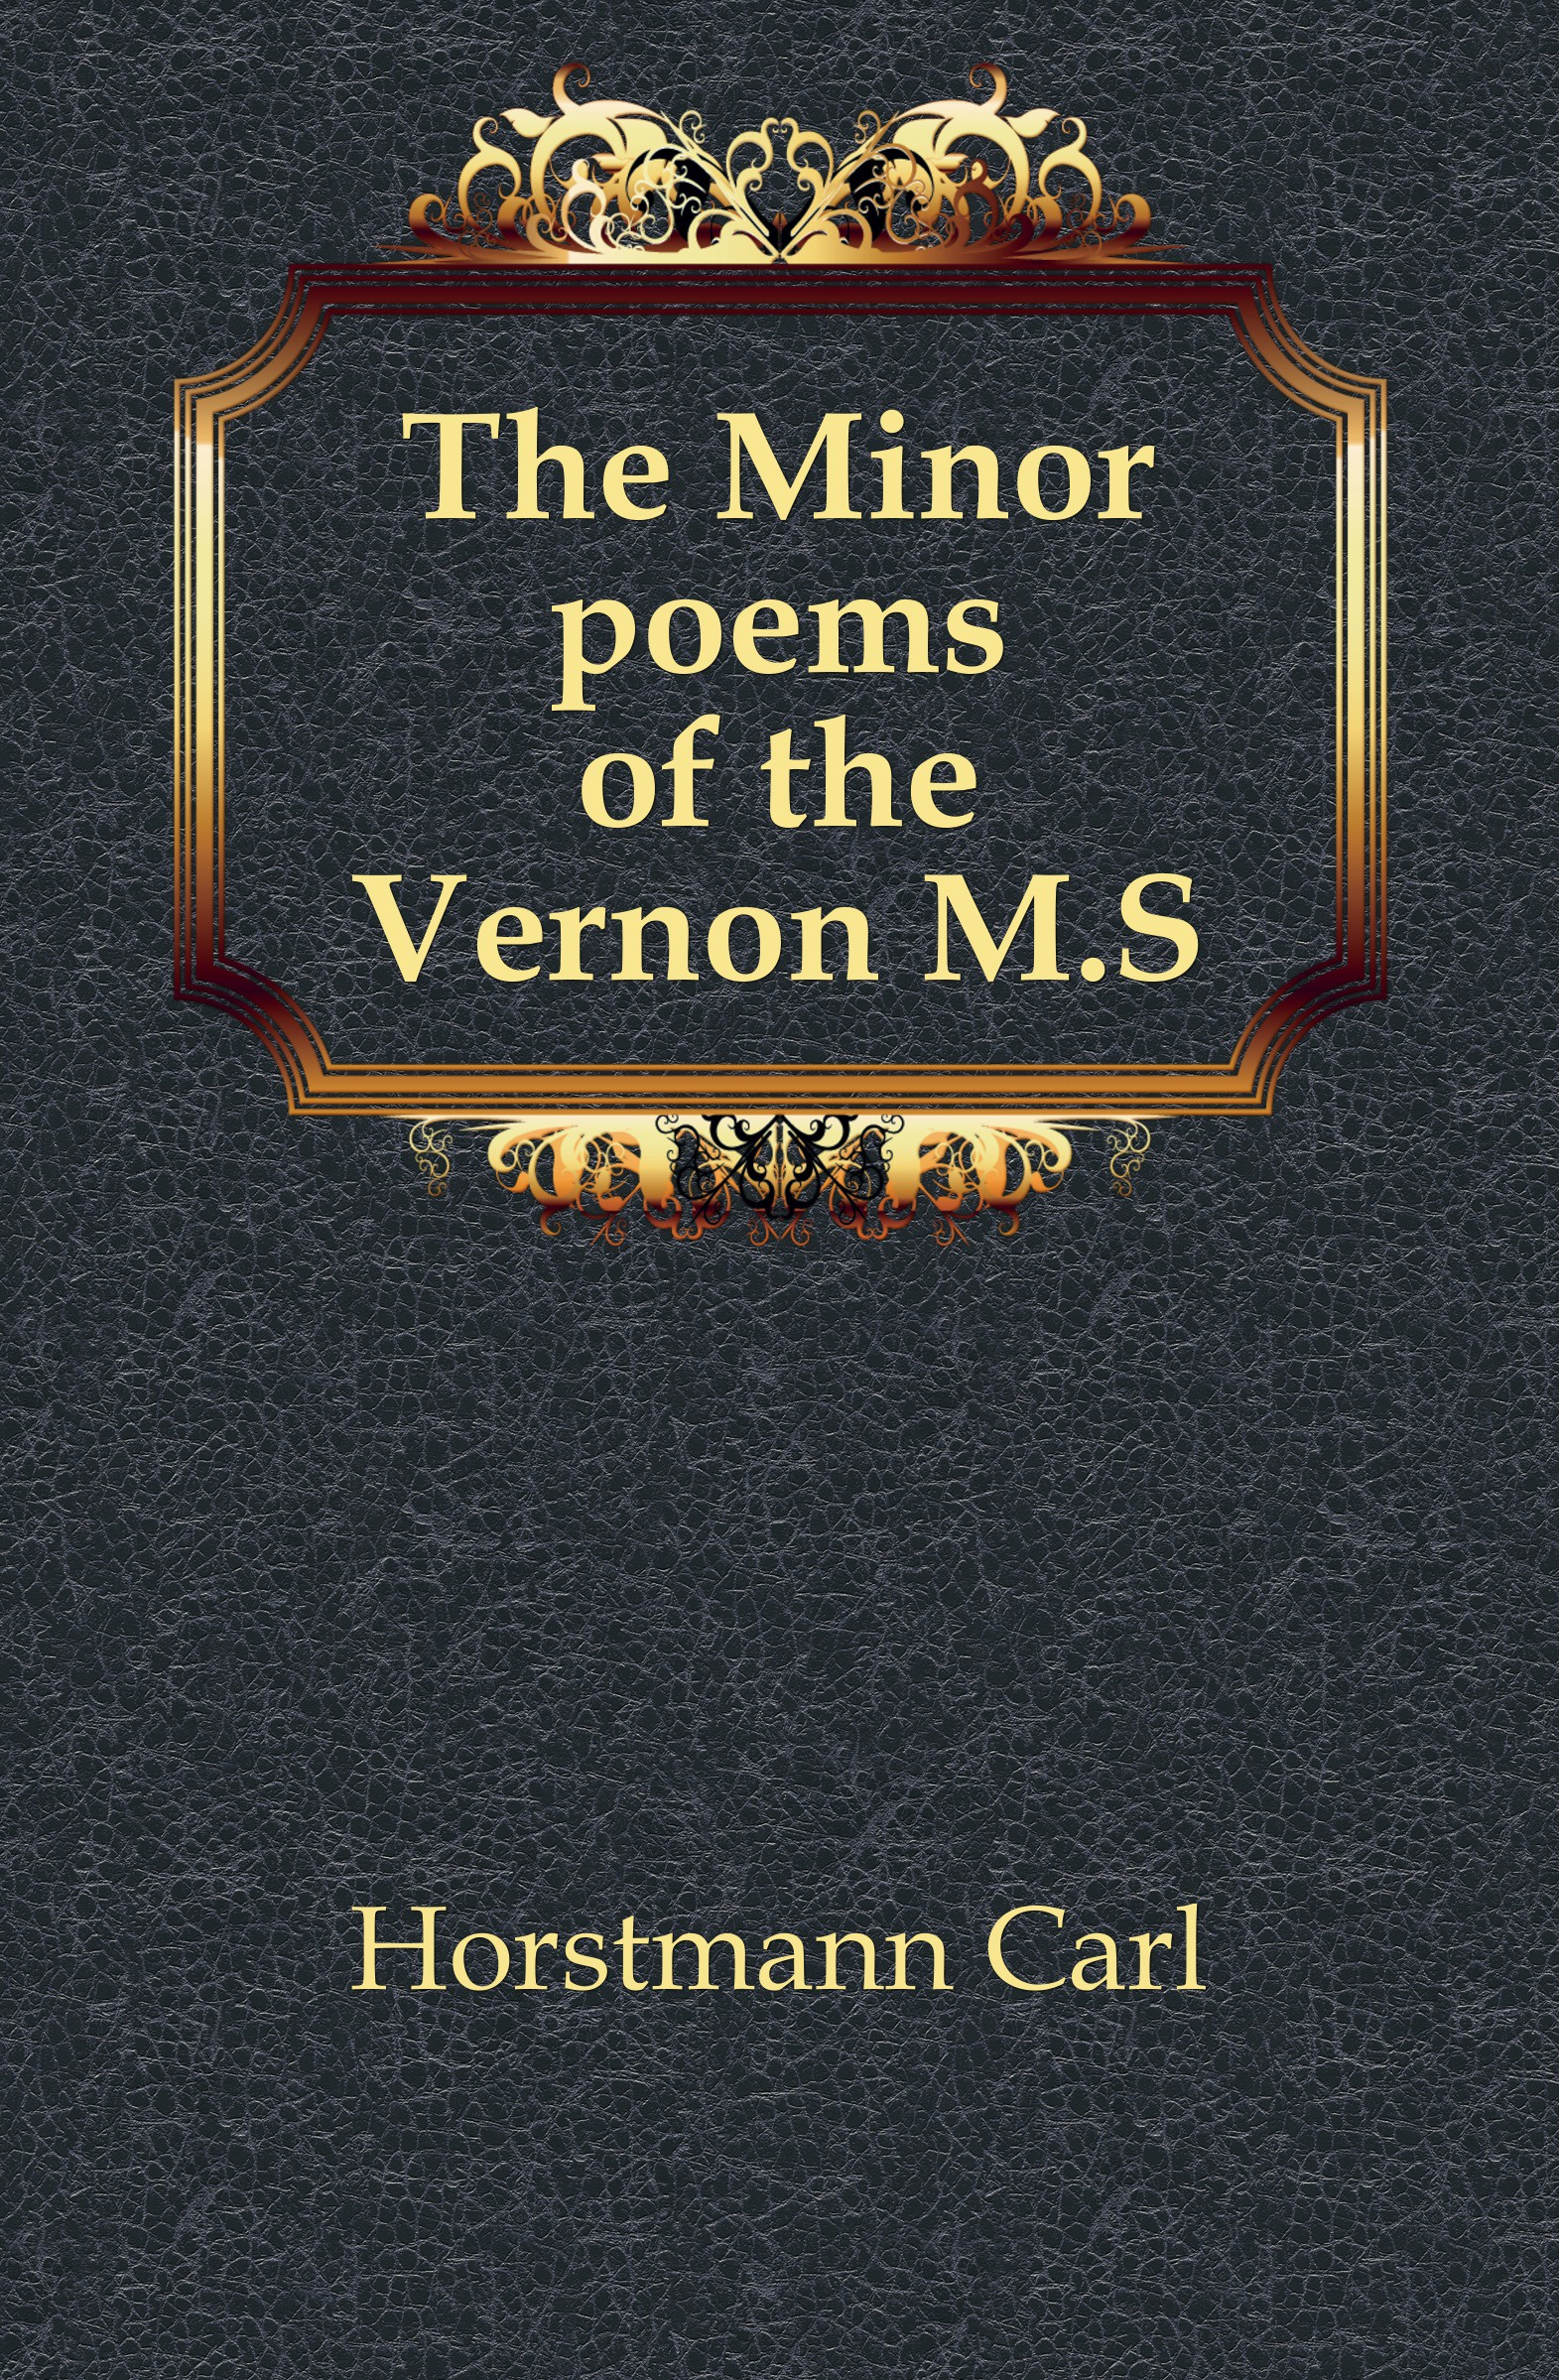 Horstmann Carl The Minor poems of the Vernon M.S. horstmann carl the minor poems of the vernon m s